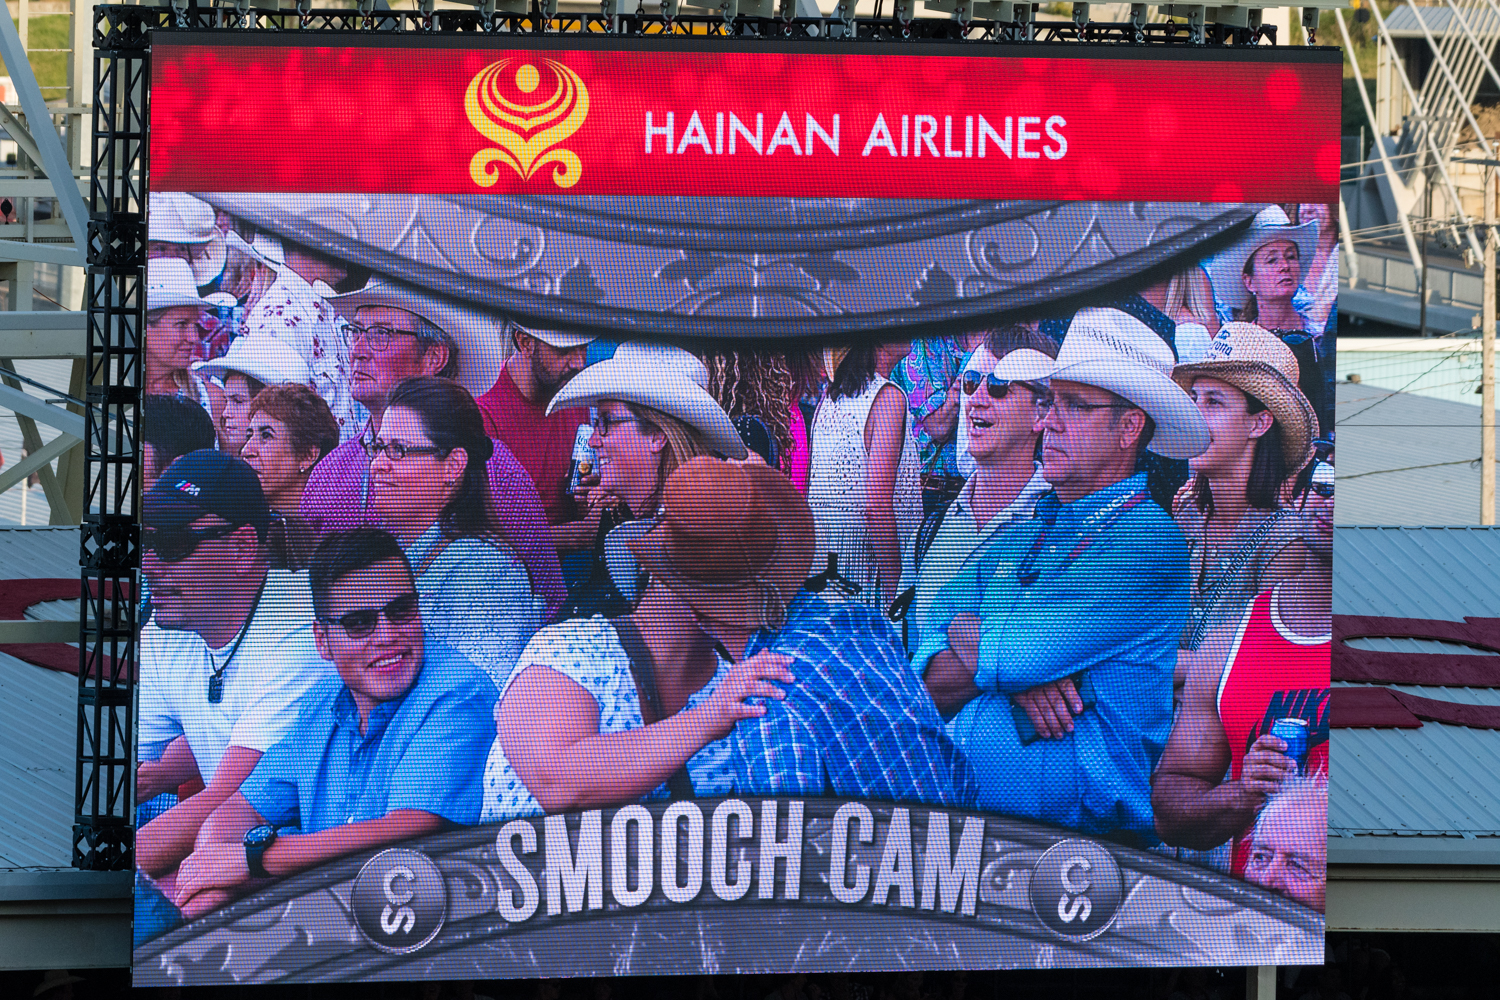 Kiss cam, something I associate very much with the North American continent.